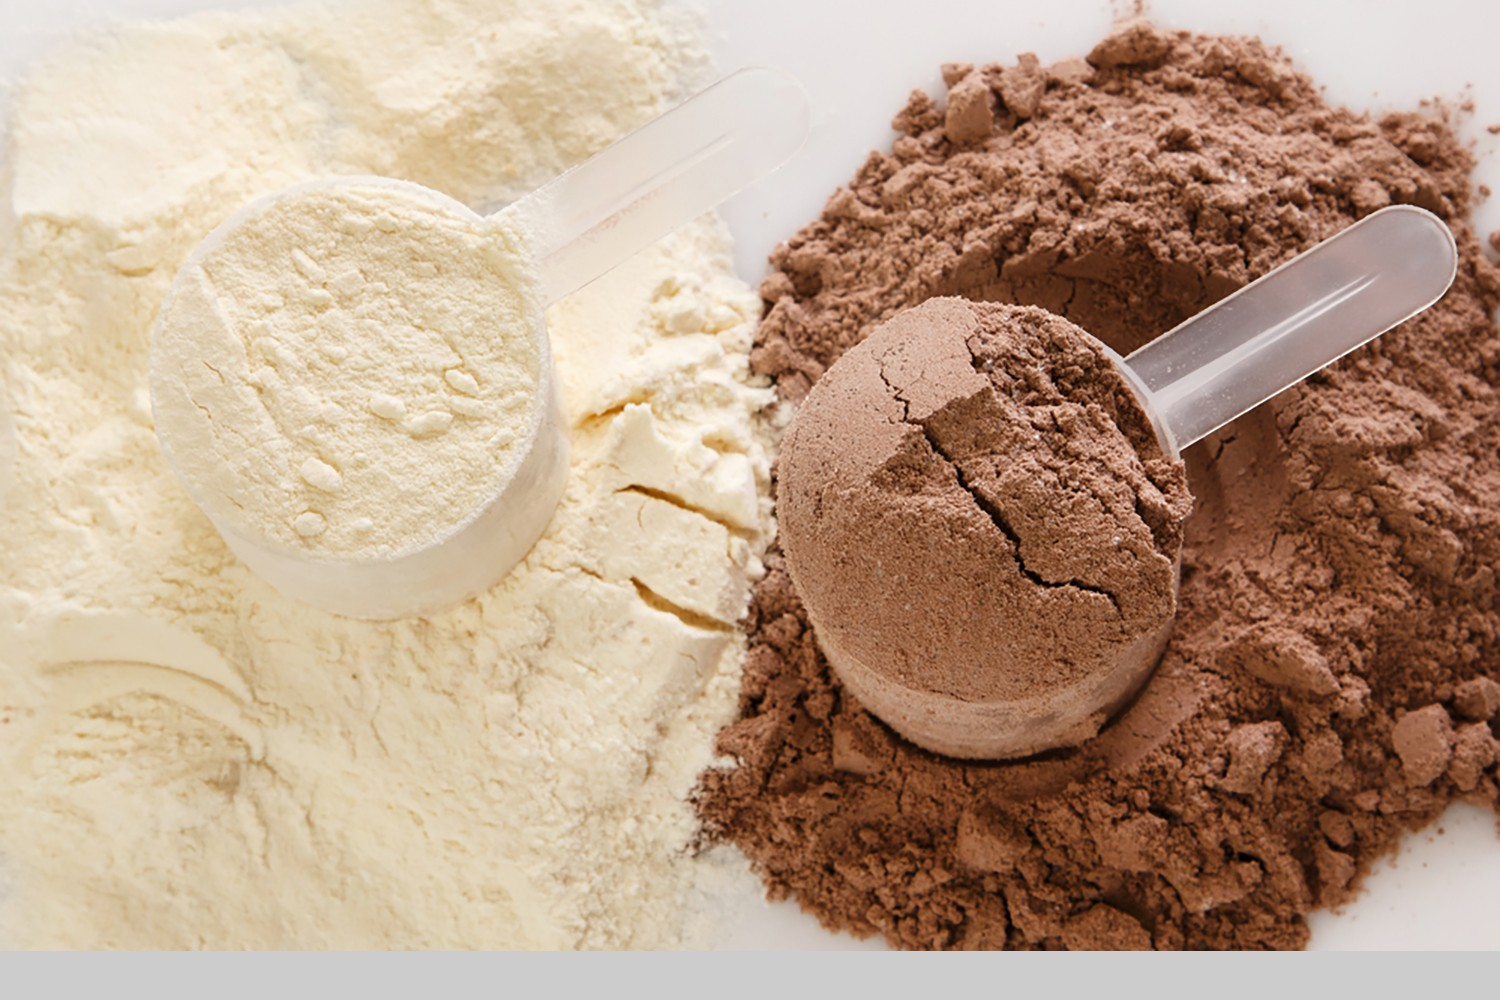 Proteine Poeder The Power Of Protein Powder Healthy Living Made Simple